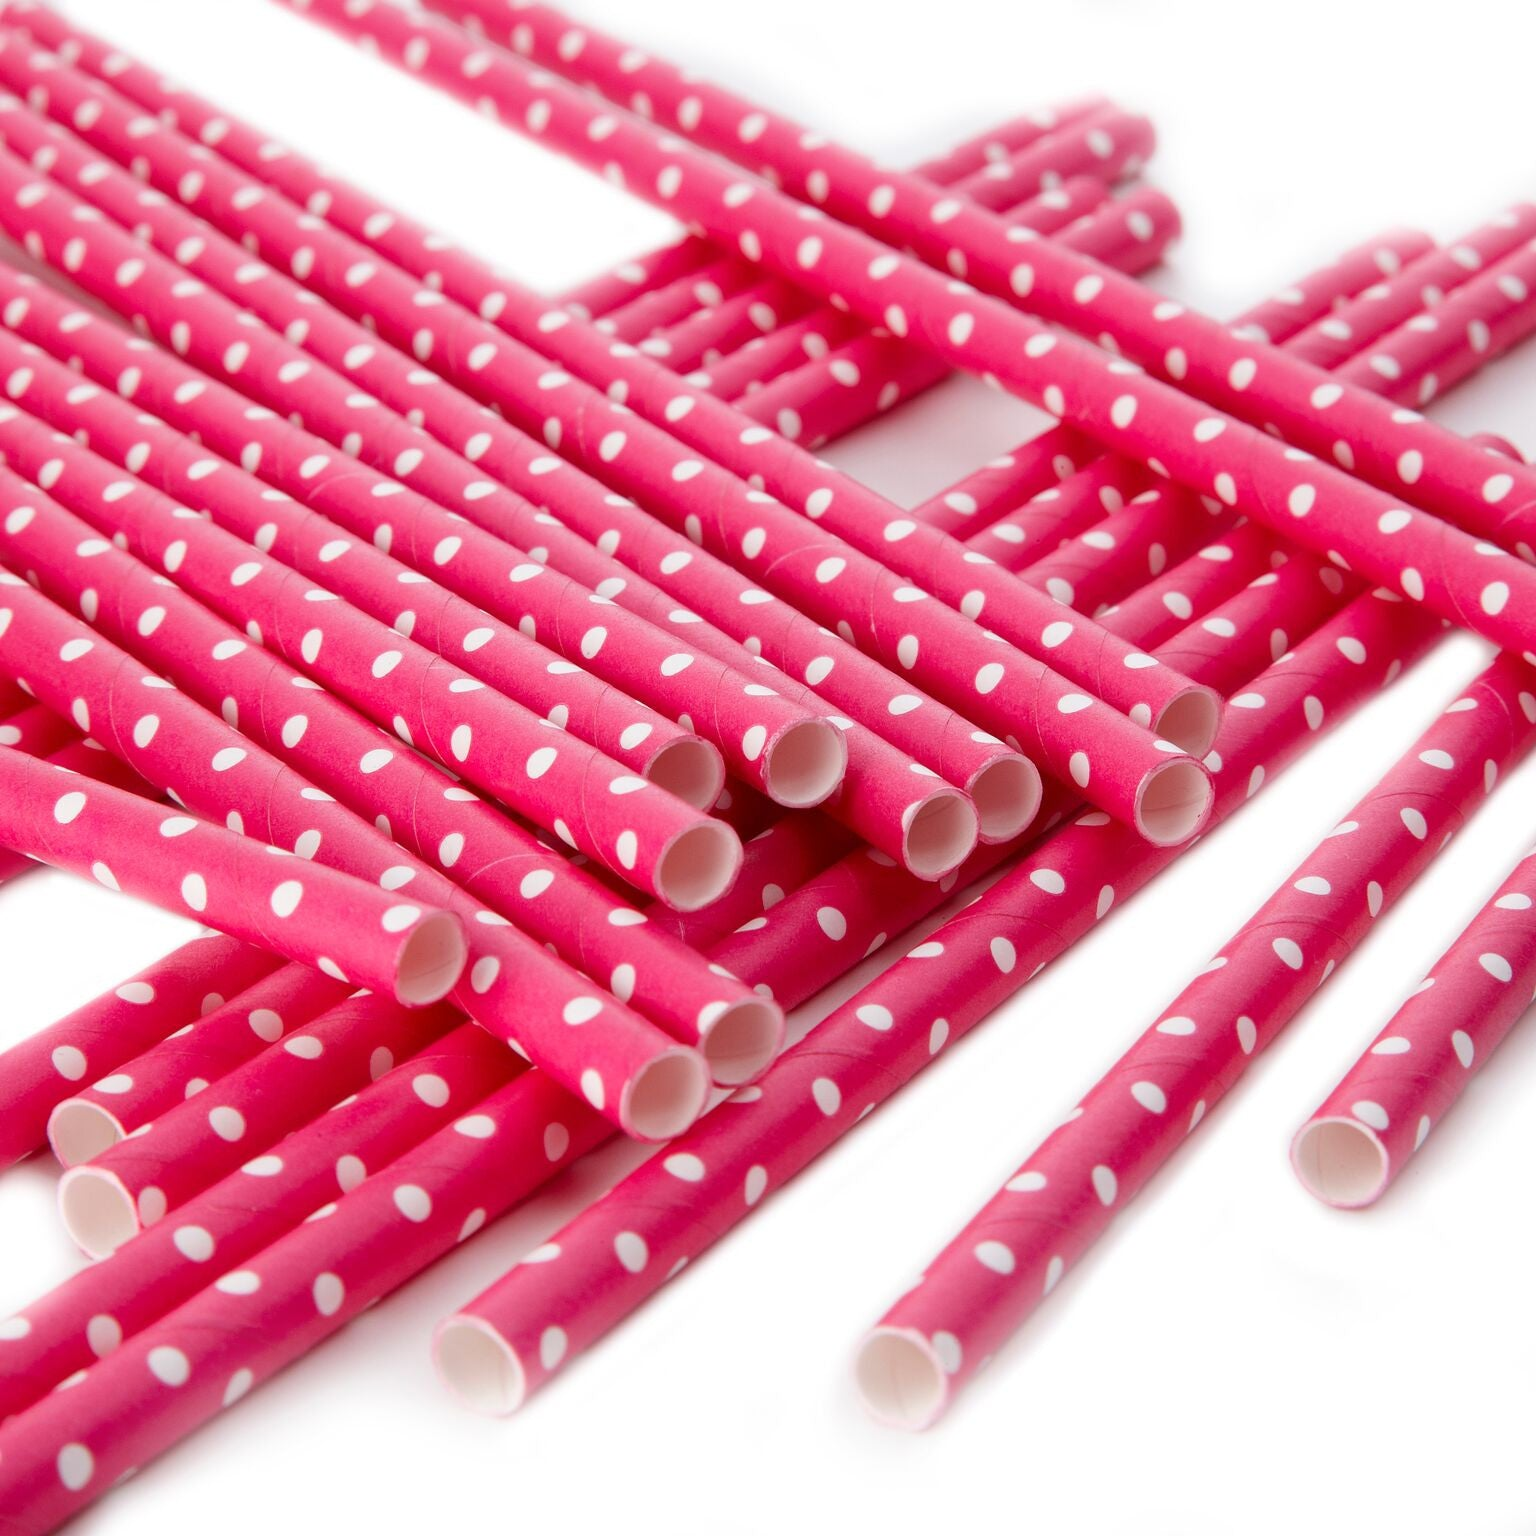 Polka Dot Paper Straws - Hot Pink and White